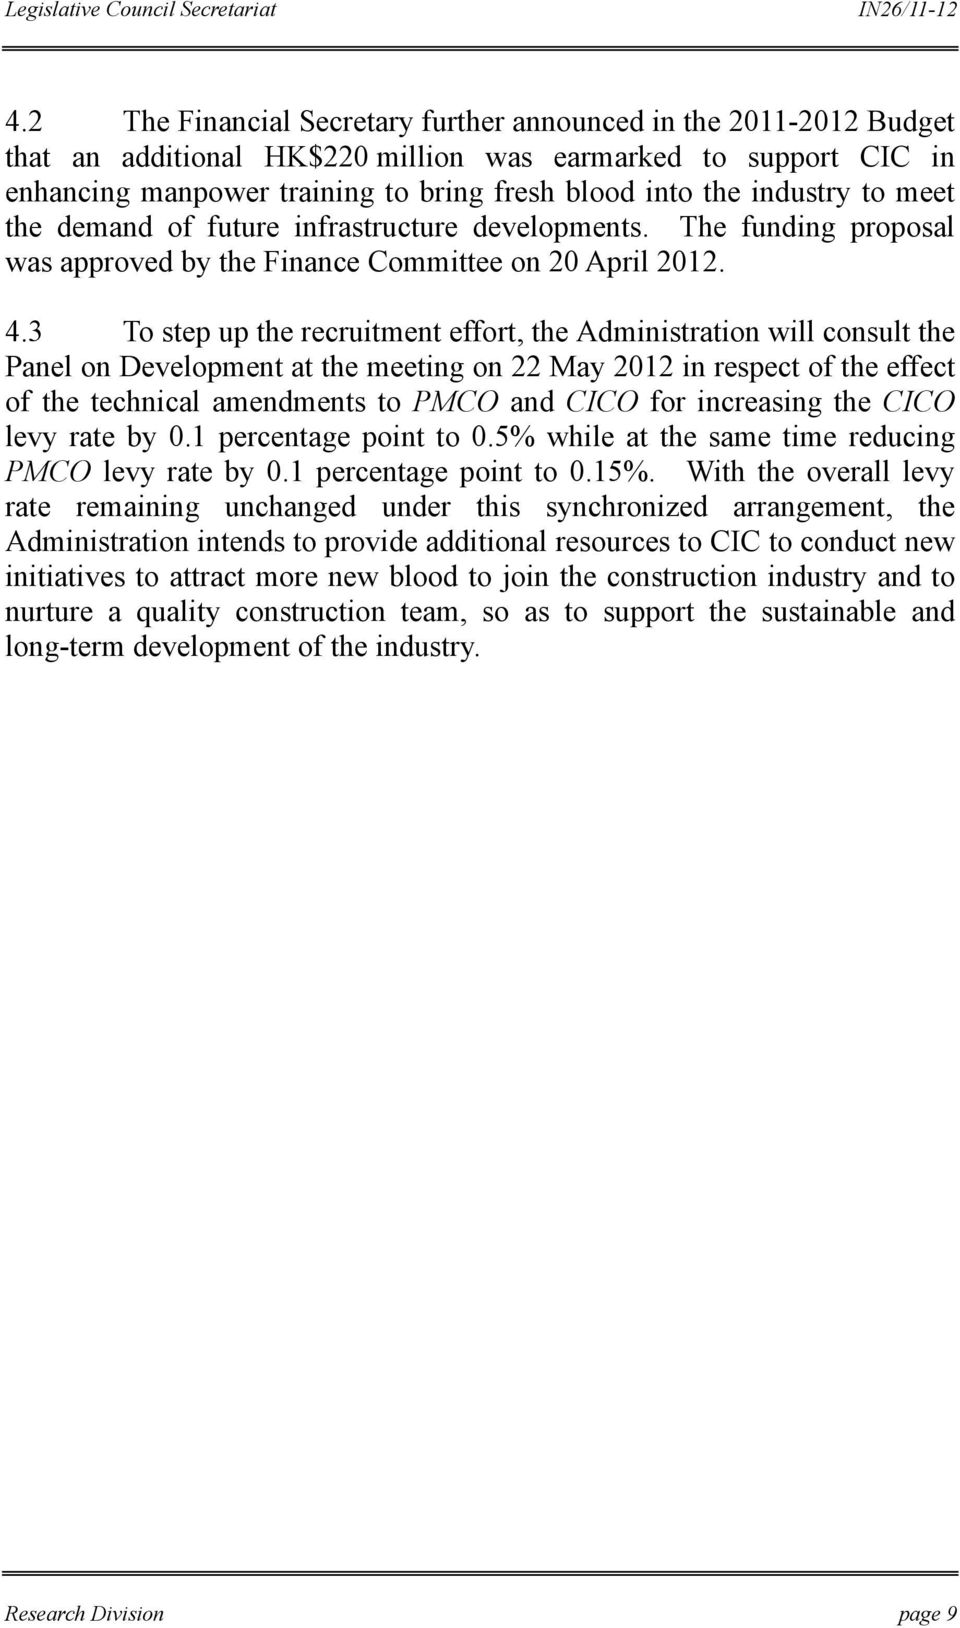 3 To step up the recruitment effort, the Administration will consult the Panel on Development at the meeting on 22 May 2012 in respect of the effect of the technical amendments to PMCO and CICO for